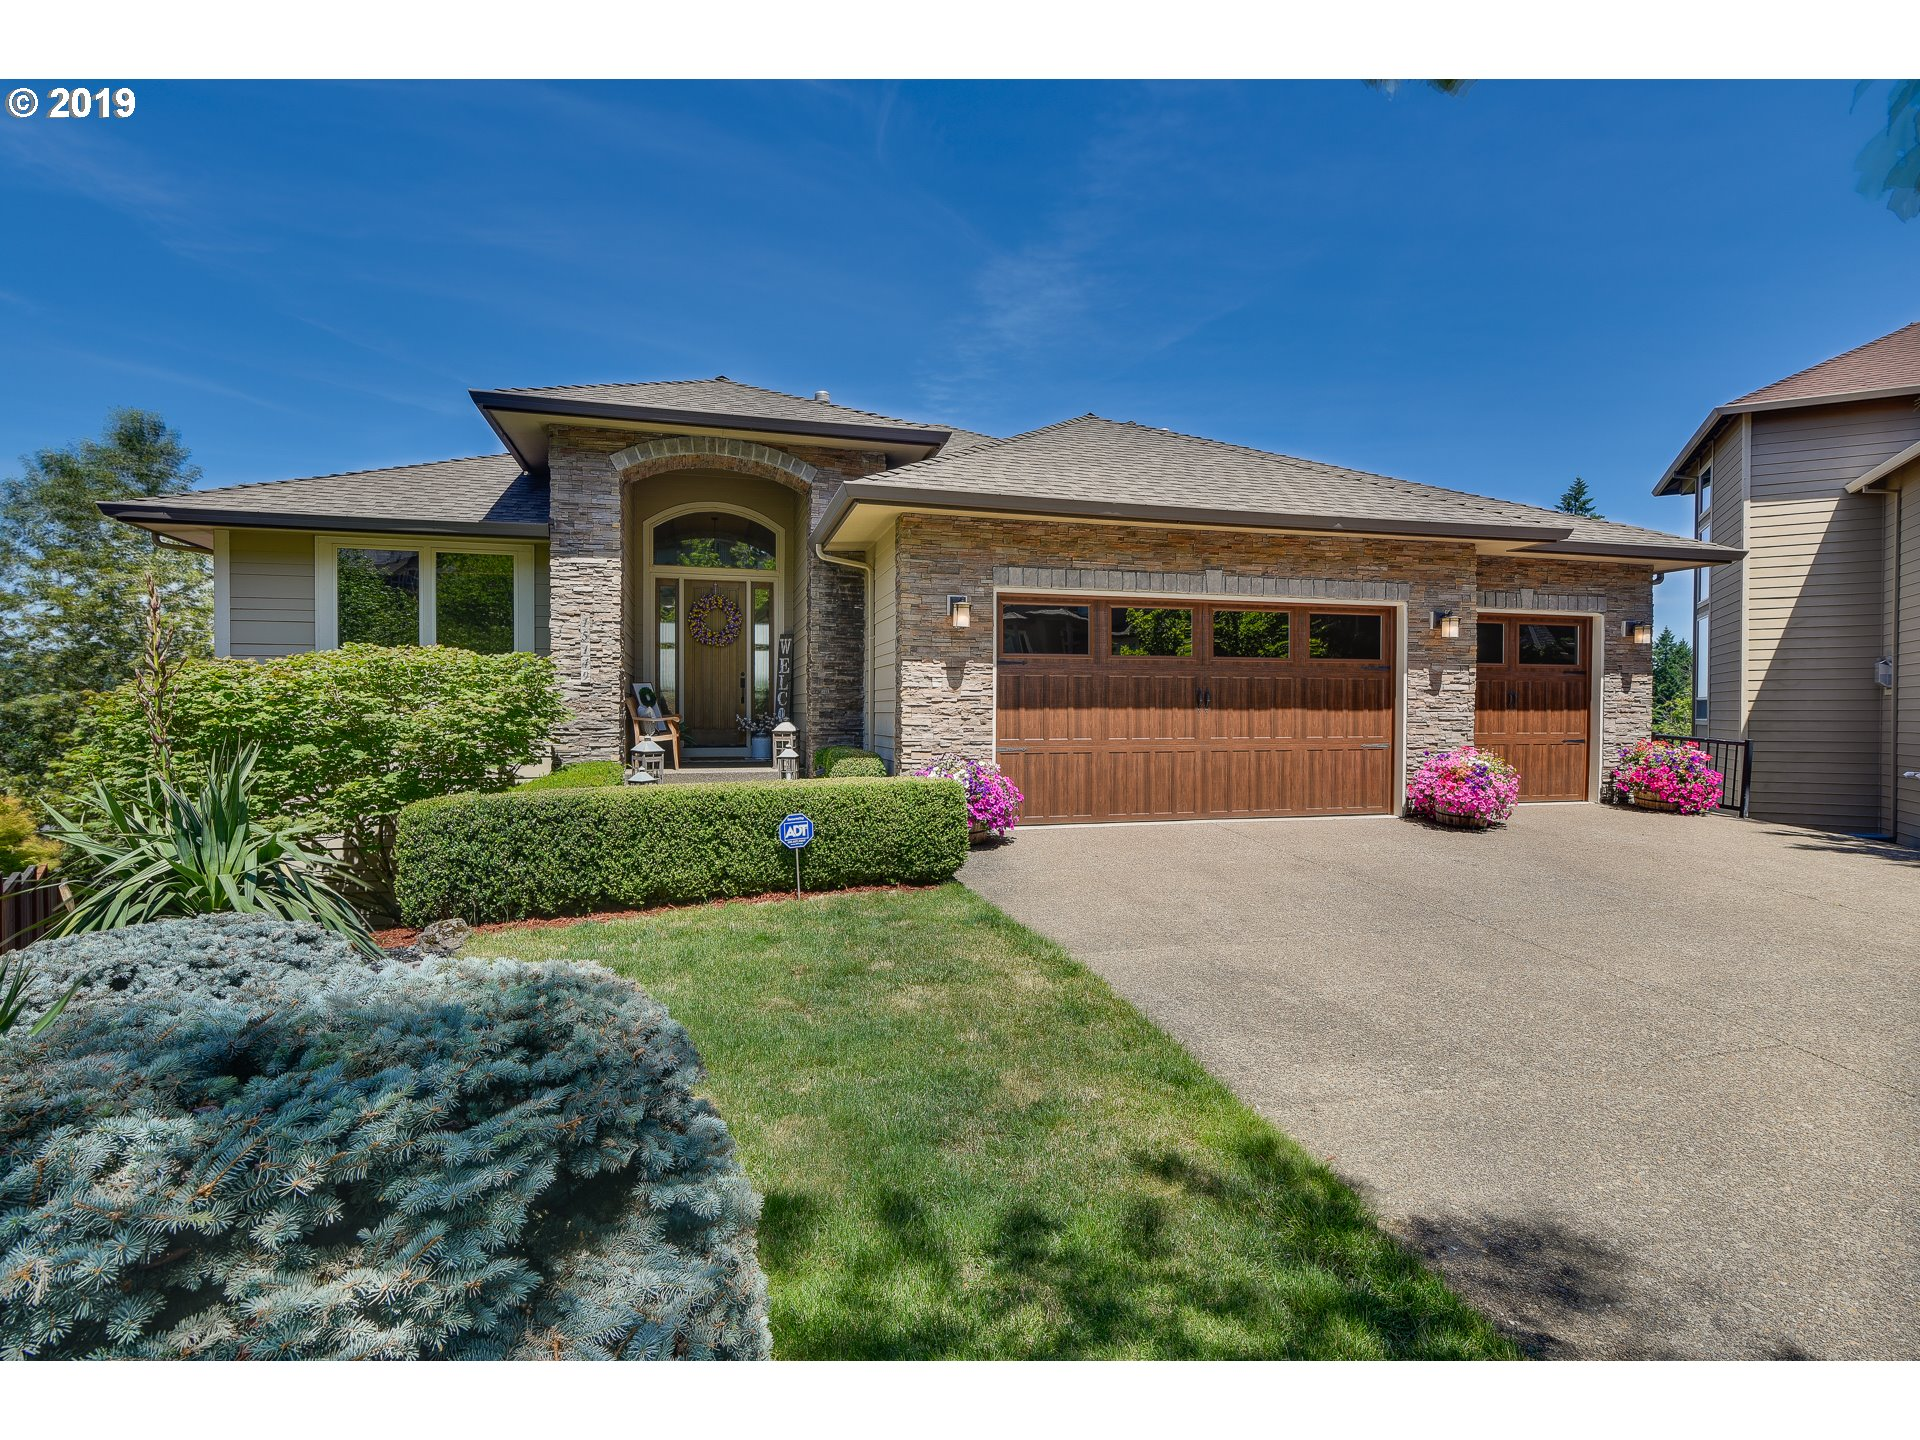 OH Sun 12-2. Stunning Jackson Hills home. Mountain and valley views greet you from almost every window. This home features: Main floor master, wine cellar, Sauna, 6 beds including 3 suites, bonus room with kitchenette and eat-bar, family room, formal living and dinning rooms, 2 fireplaces and 2 gorgeous decks affording you year-found views. Office features rich natural wood built-ins.